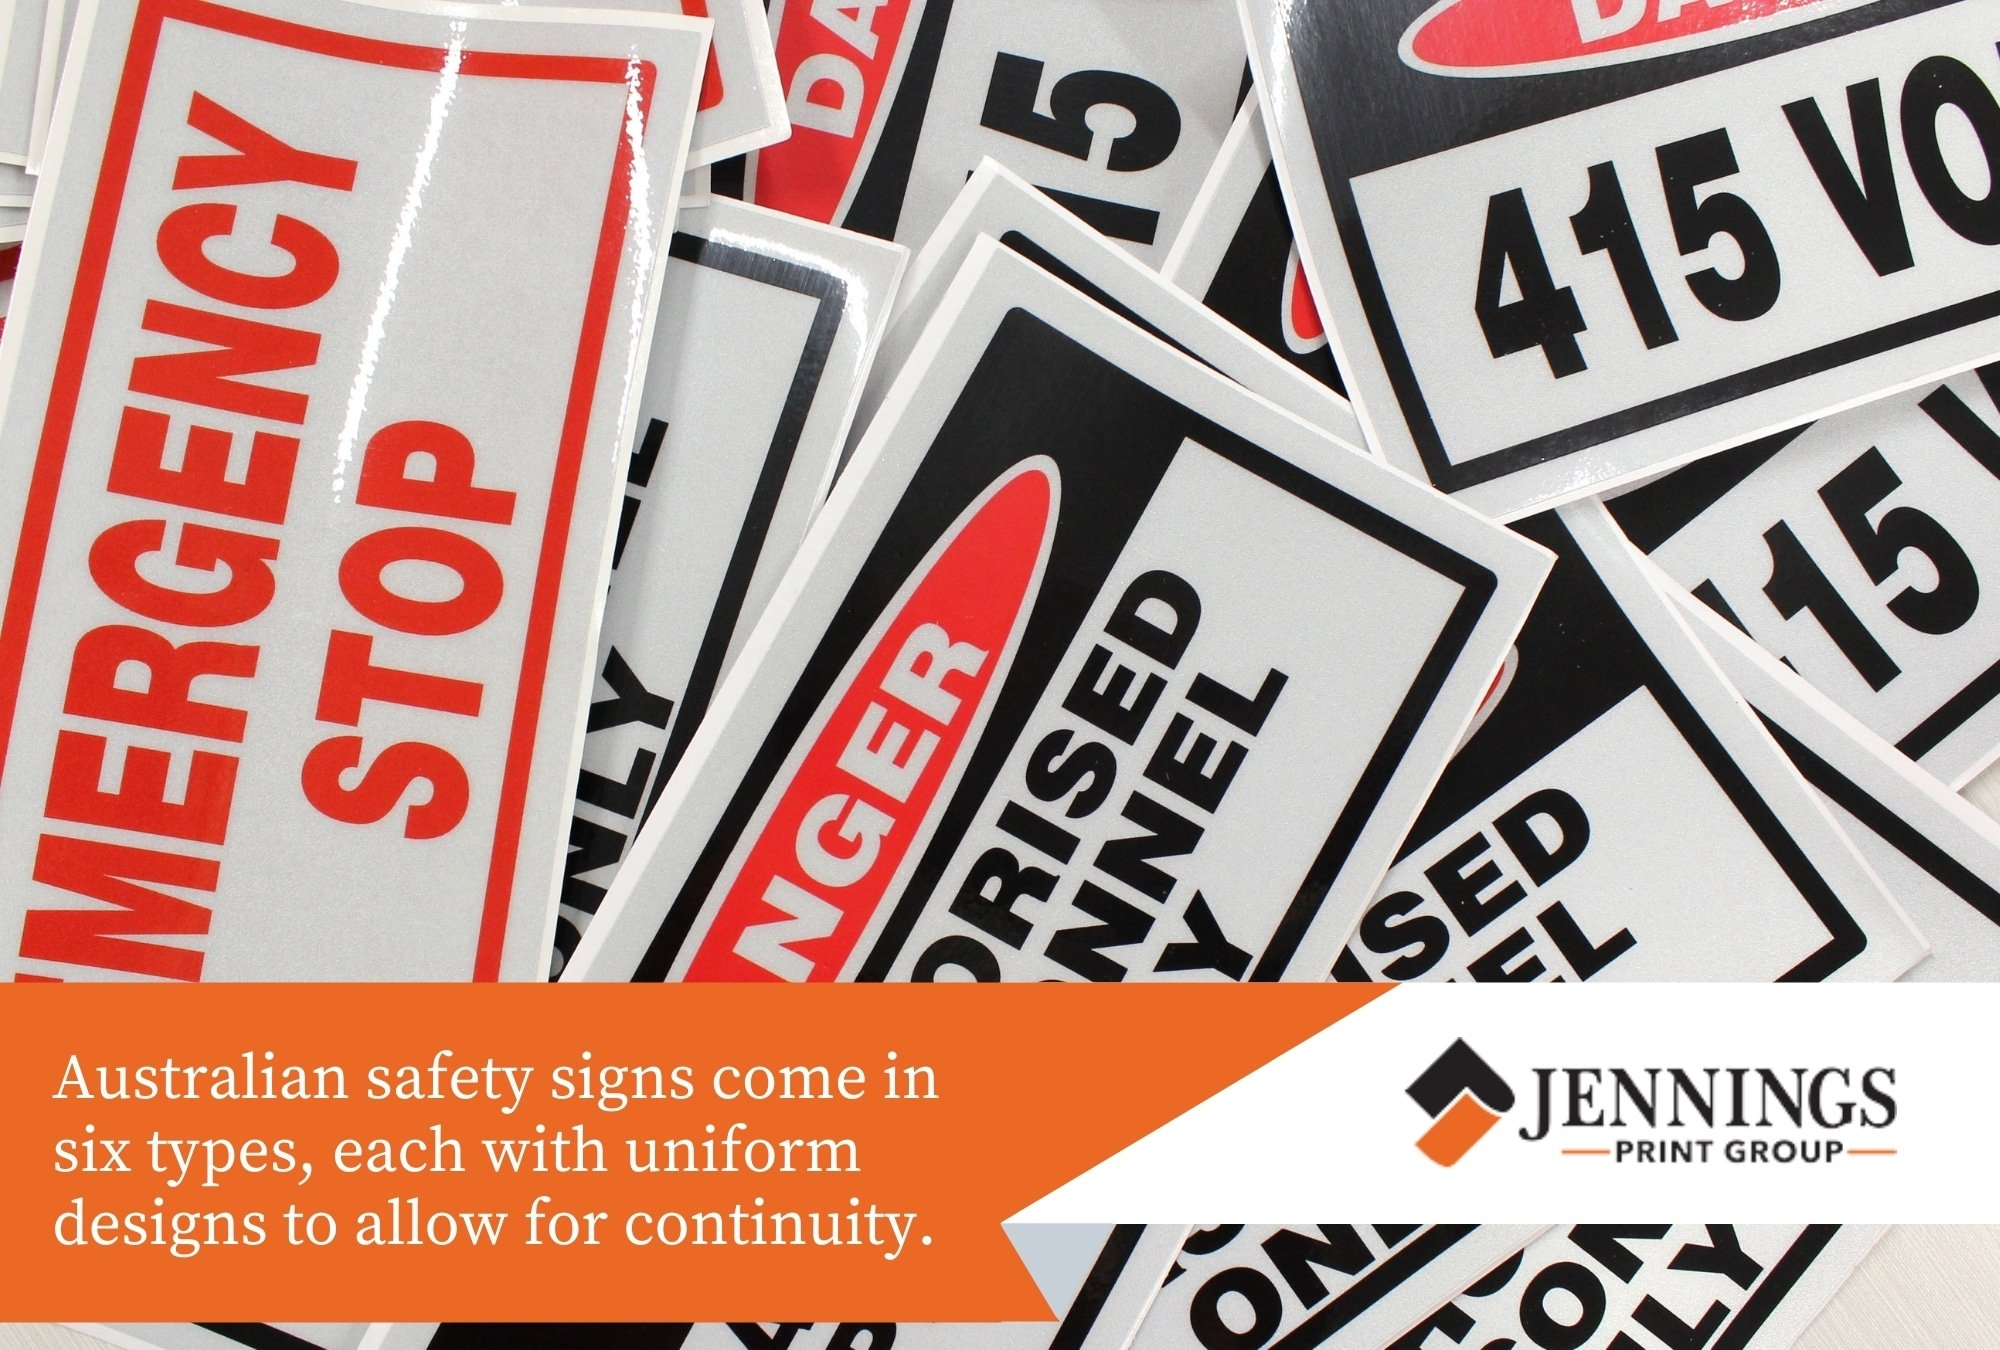 Australian safety signs come in six types, each with uniform designs to allow for continuity.